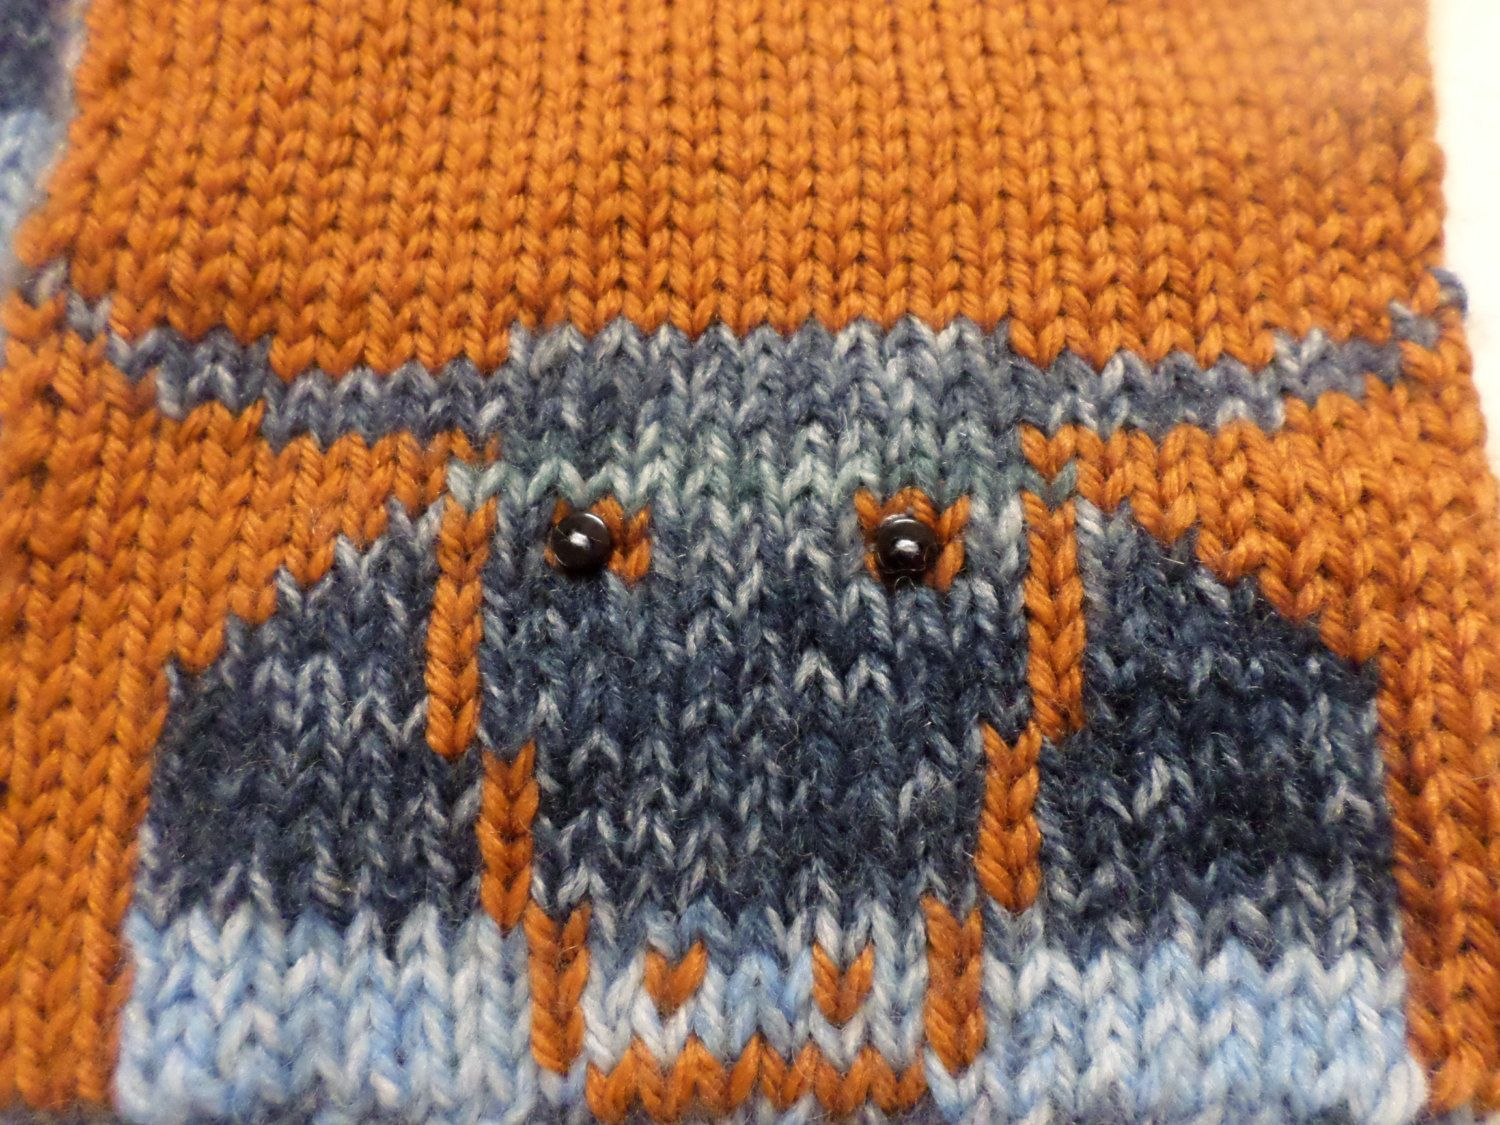 Babe the blue ox double knit scarf pattern by knitsbycindy on etsy babe the blue ox double knit scarf pattern by knitsbycindy on etsy bankloansurffo Image collections